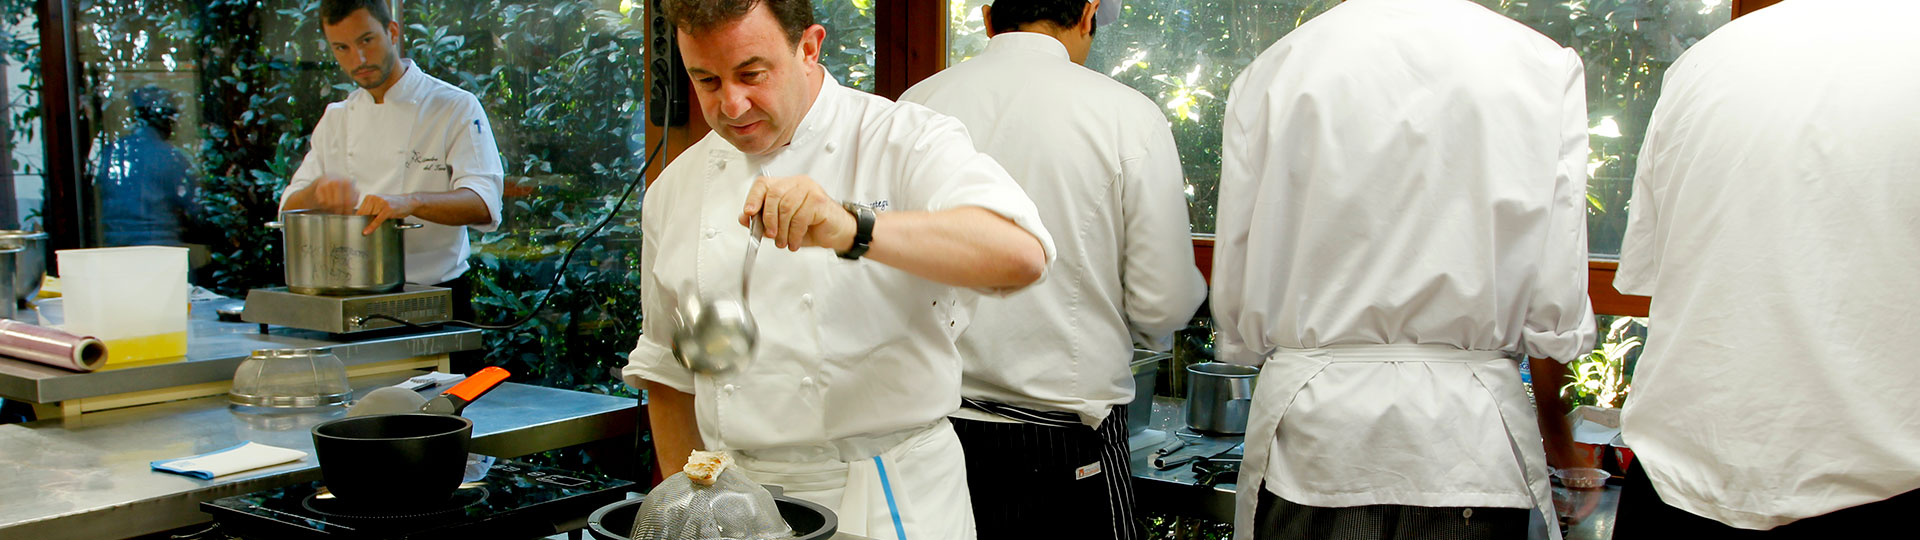 The Spanish chef Martín Berasategui cooking